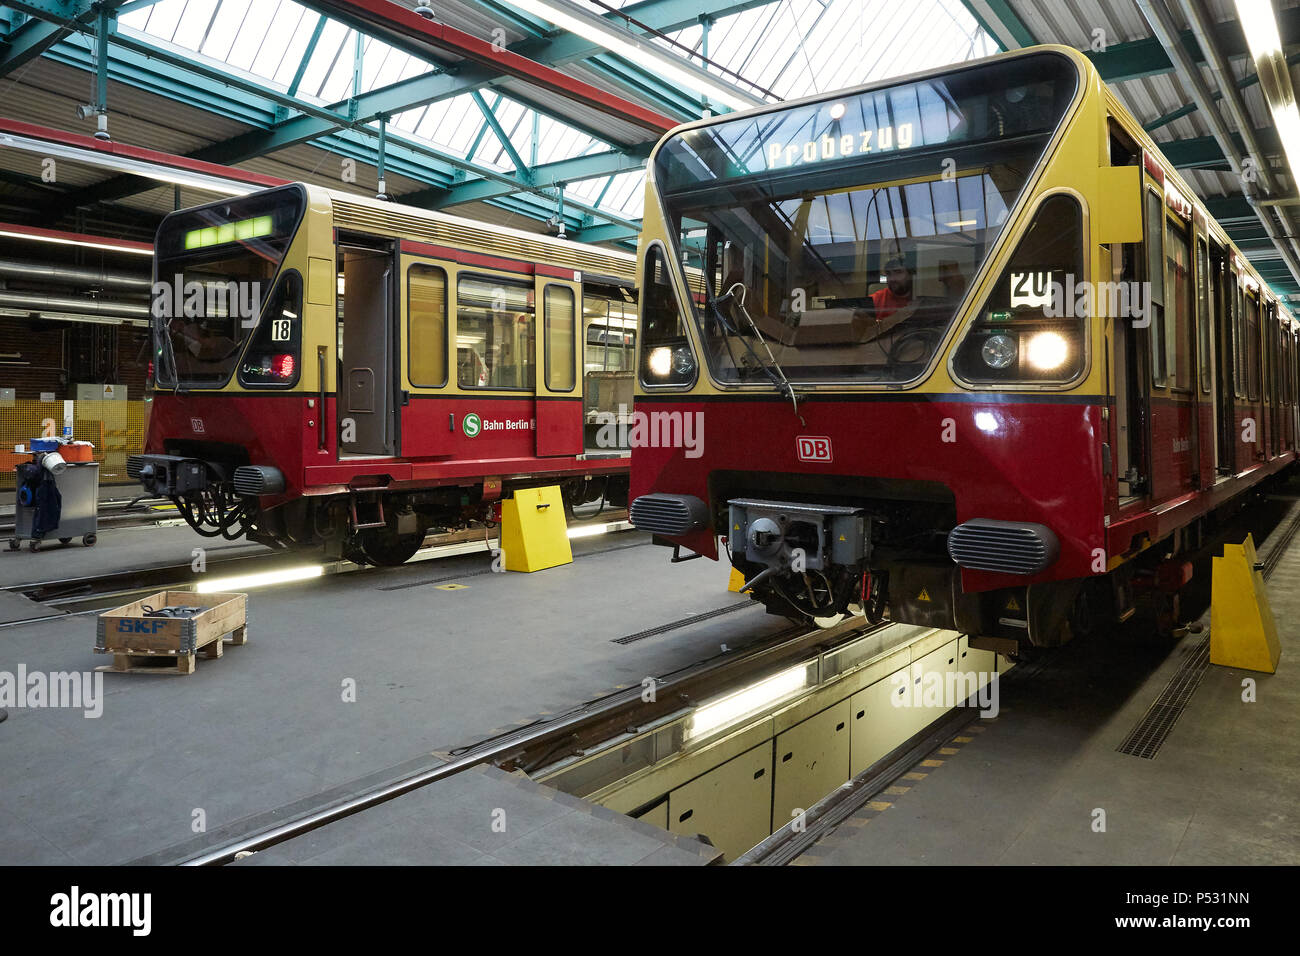 Berlin, Germany - trains of the S-Bahn Berlin from the 480 series are in the workshop for maintenance - Stock Image